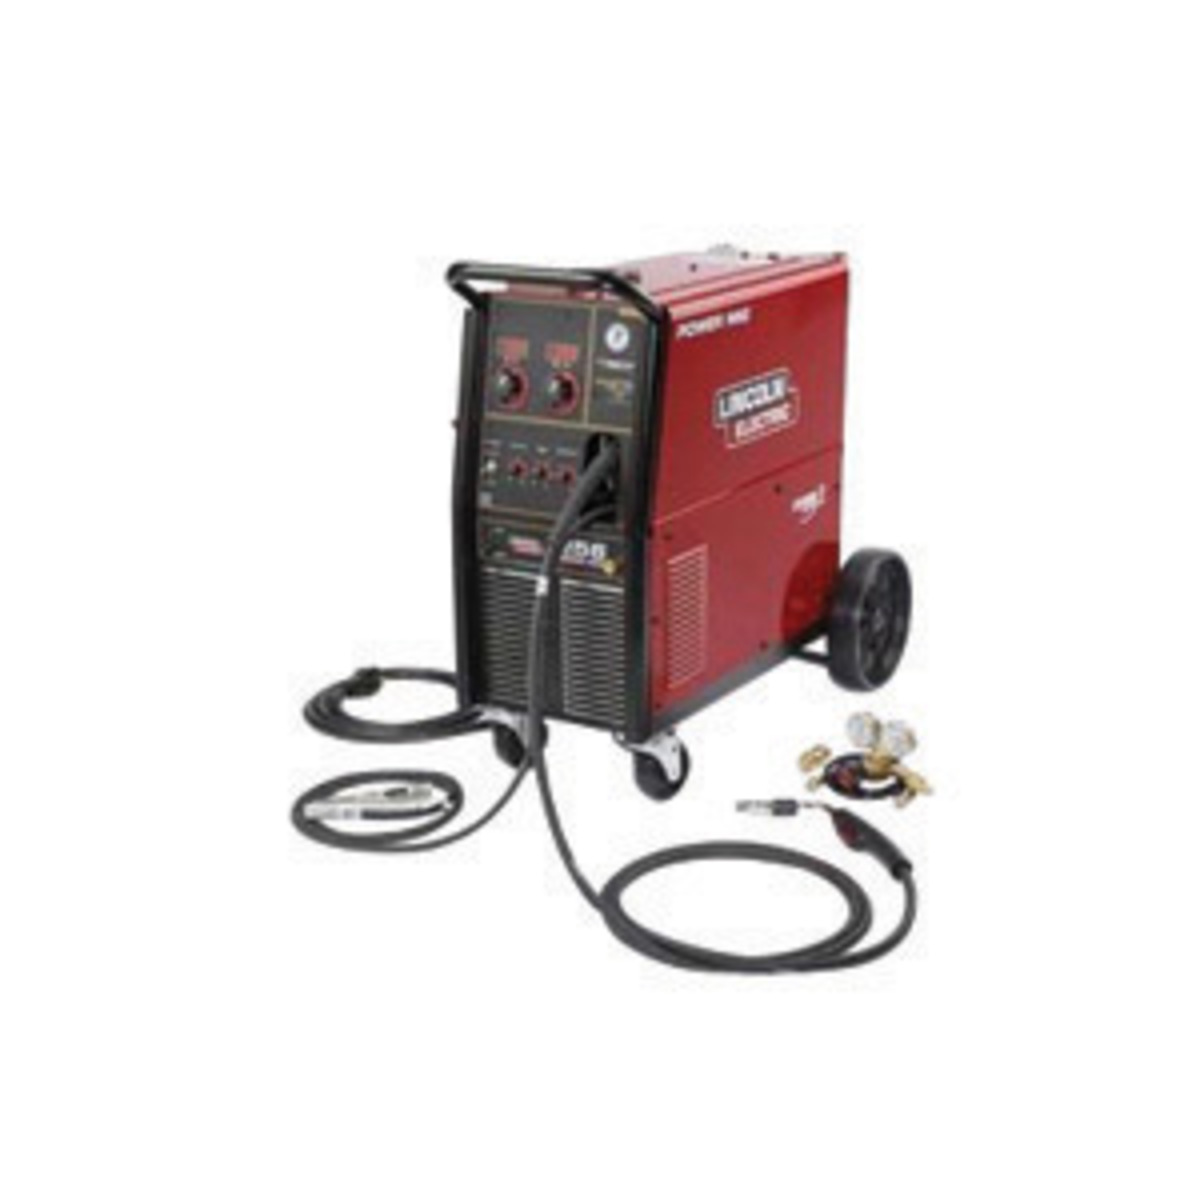 Airgas - LINK3068-2 - Lincoln Electric® Power MIG® 256 MIG Welder ...